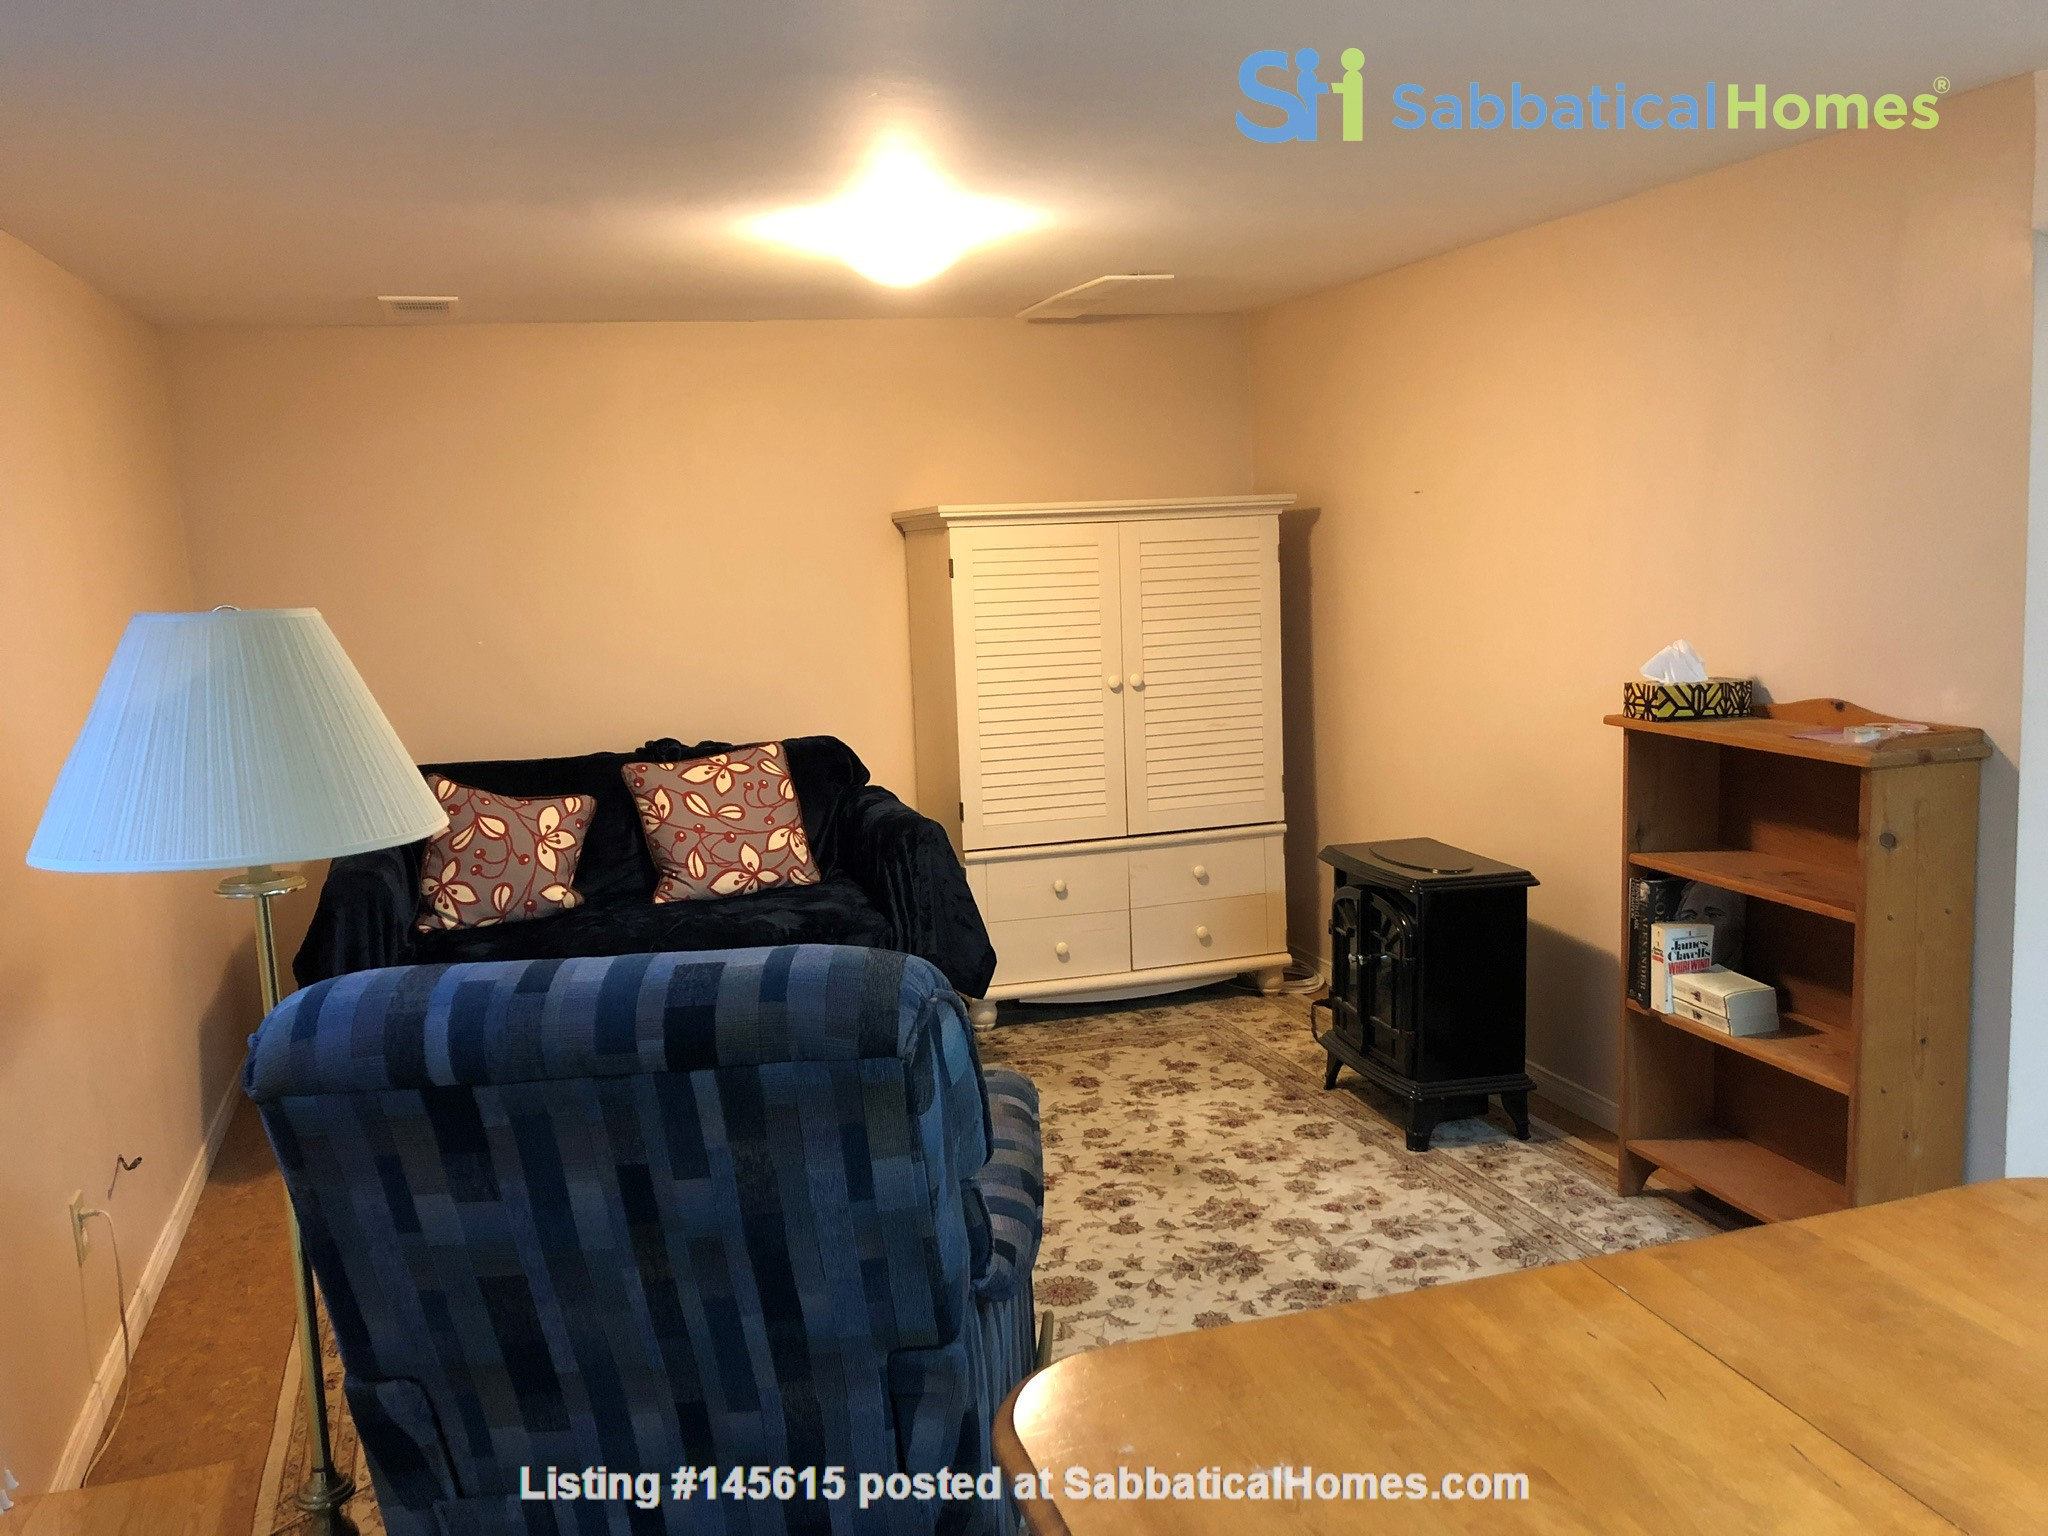 Apartment in quiet bungalow, 10 minutes walk to U of Guelph campus. Home Rental in Guelph, Ontario, Canada 2